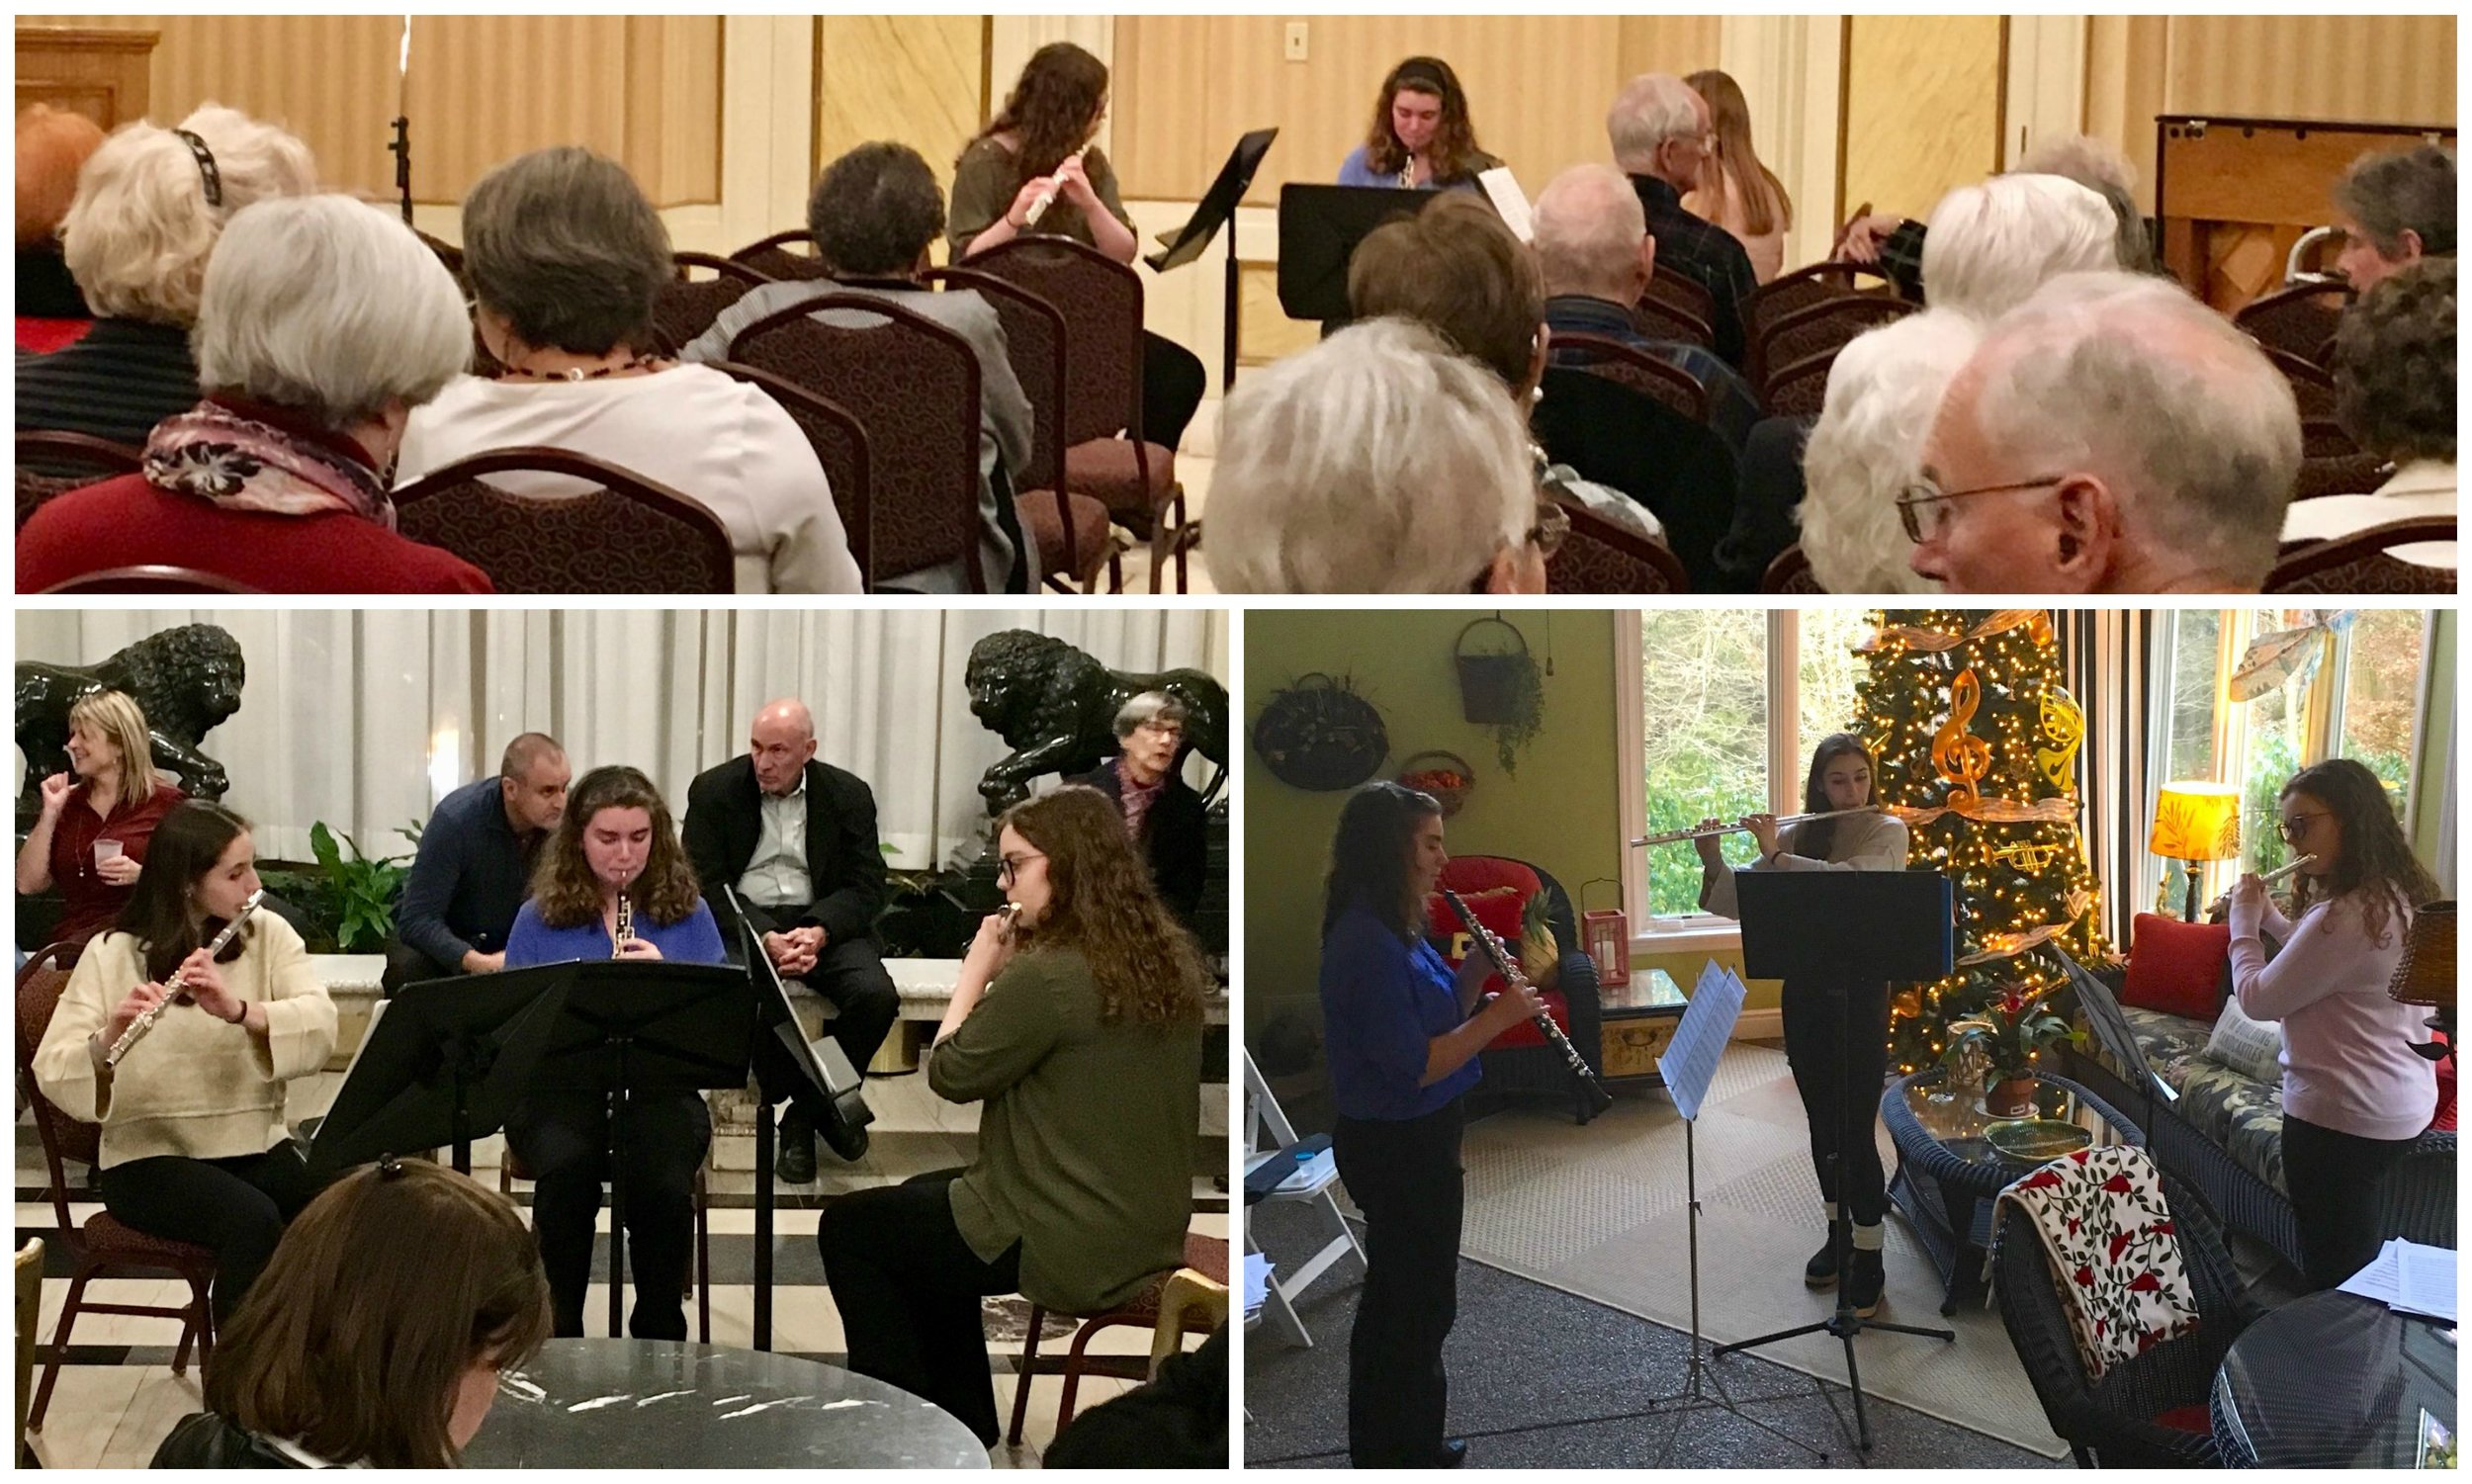 Kookaburra Quartet - November 14, 15, and 18, 2018Avery, Becky, Emily, and Zoe have performed as trios all around town in November 2018. They played for the Friends of the Pittsburgh Symphony in the Regency Room, in the beautiful Heinz Hall foyer before the Pittsburgh Speaker Series lecture by Gloria Steinem, and at the Pittsburgh Symphony Orchestra's Holiday Home Tour fundraising event.